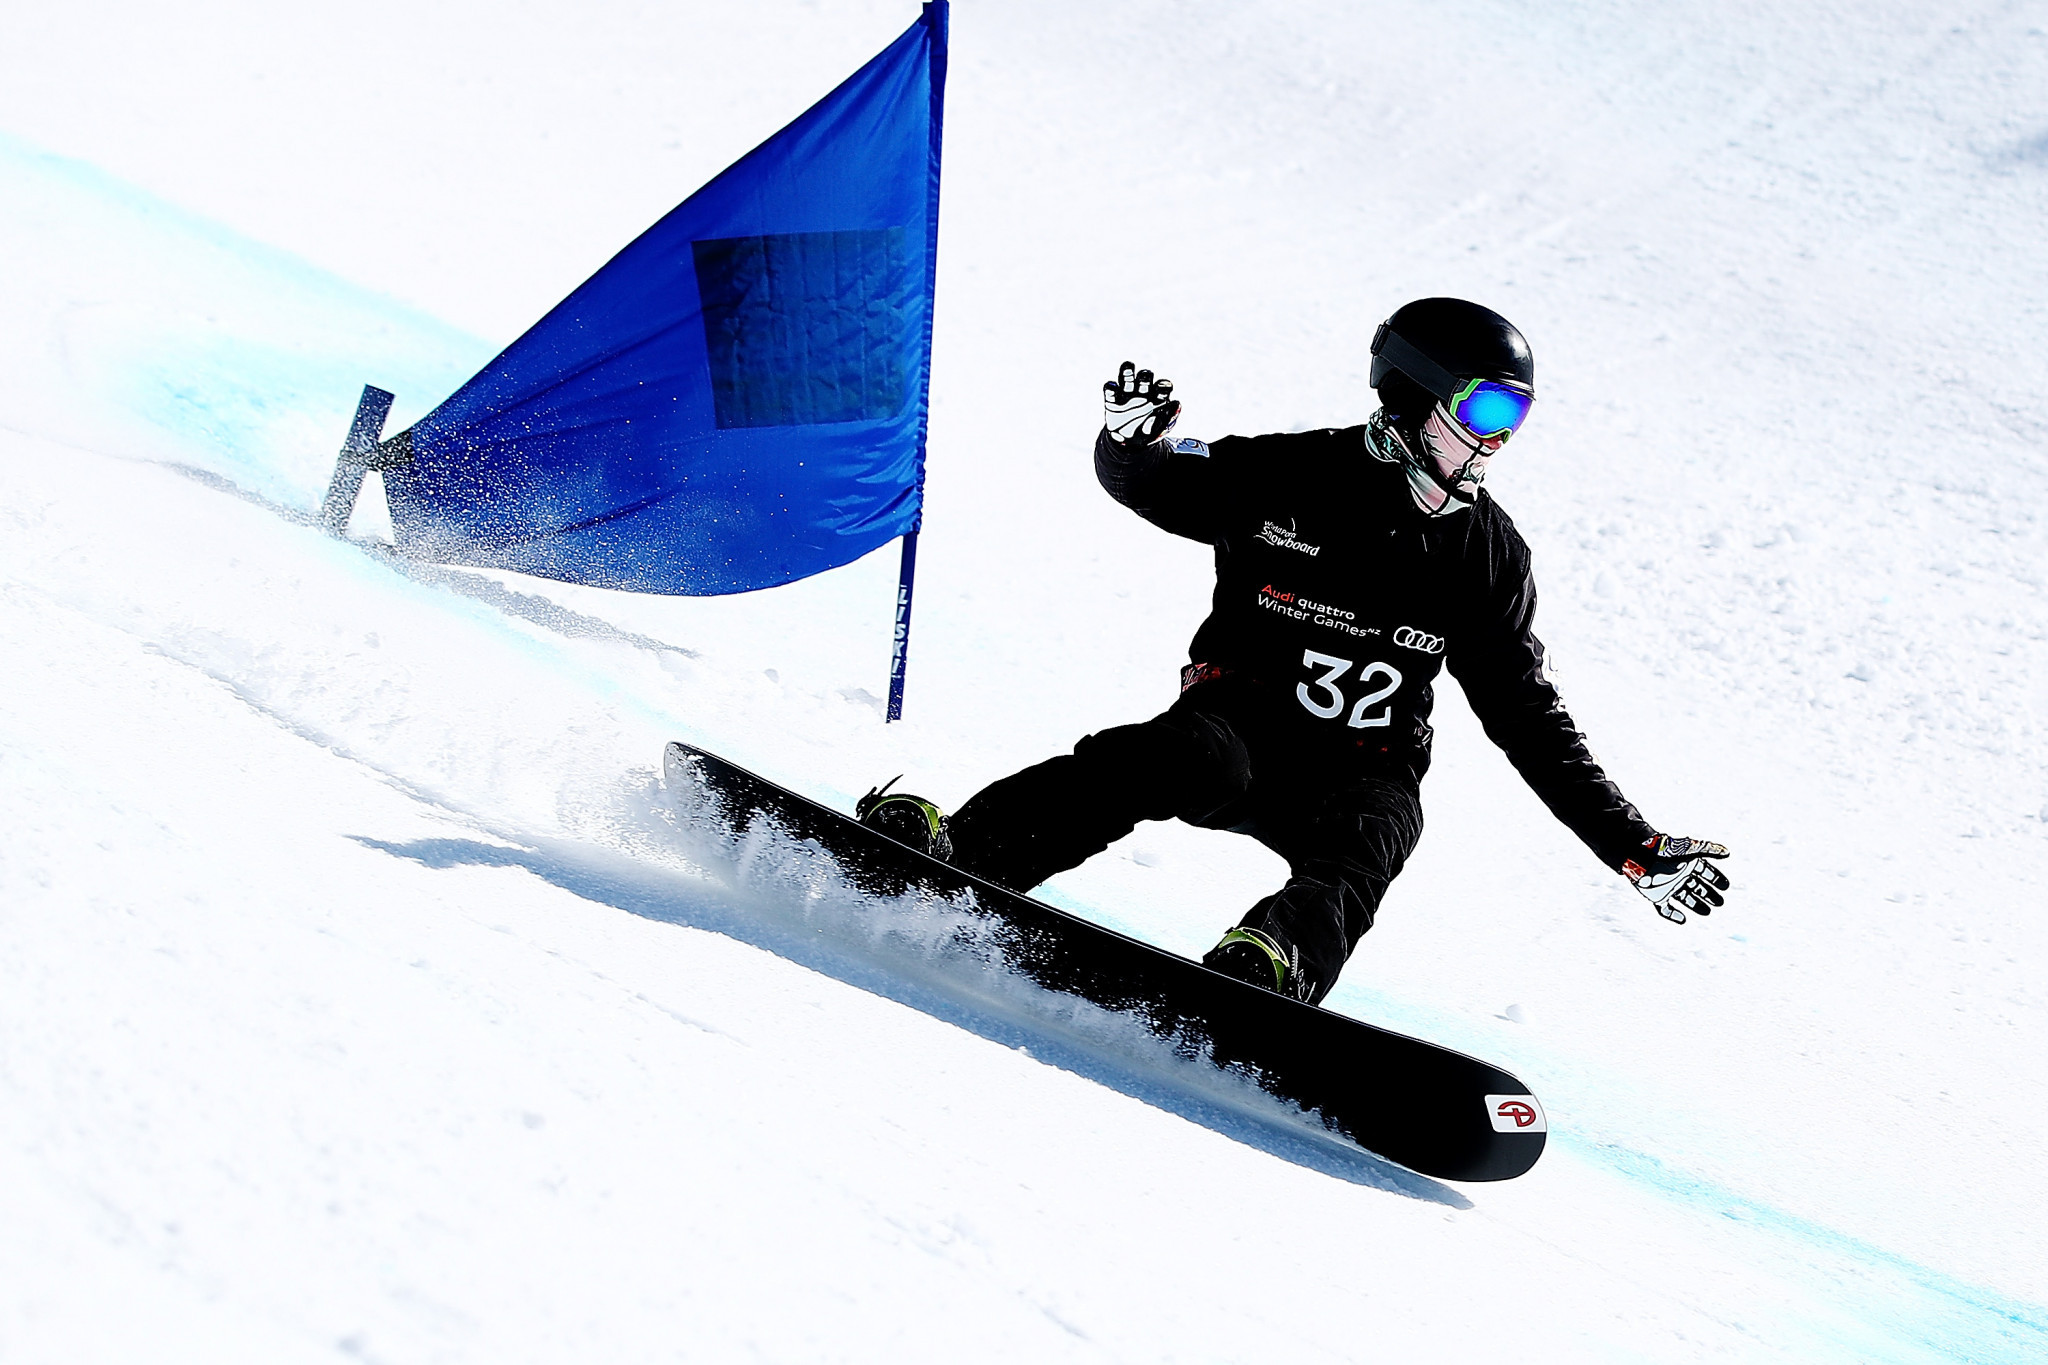 Snowboarder Tudhope named IPC Allianz Athlete of the Month for December